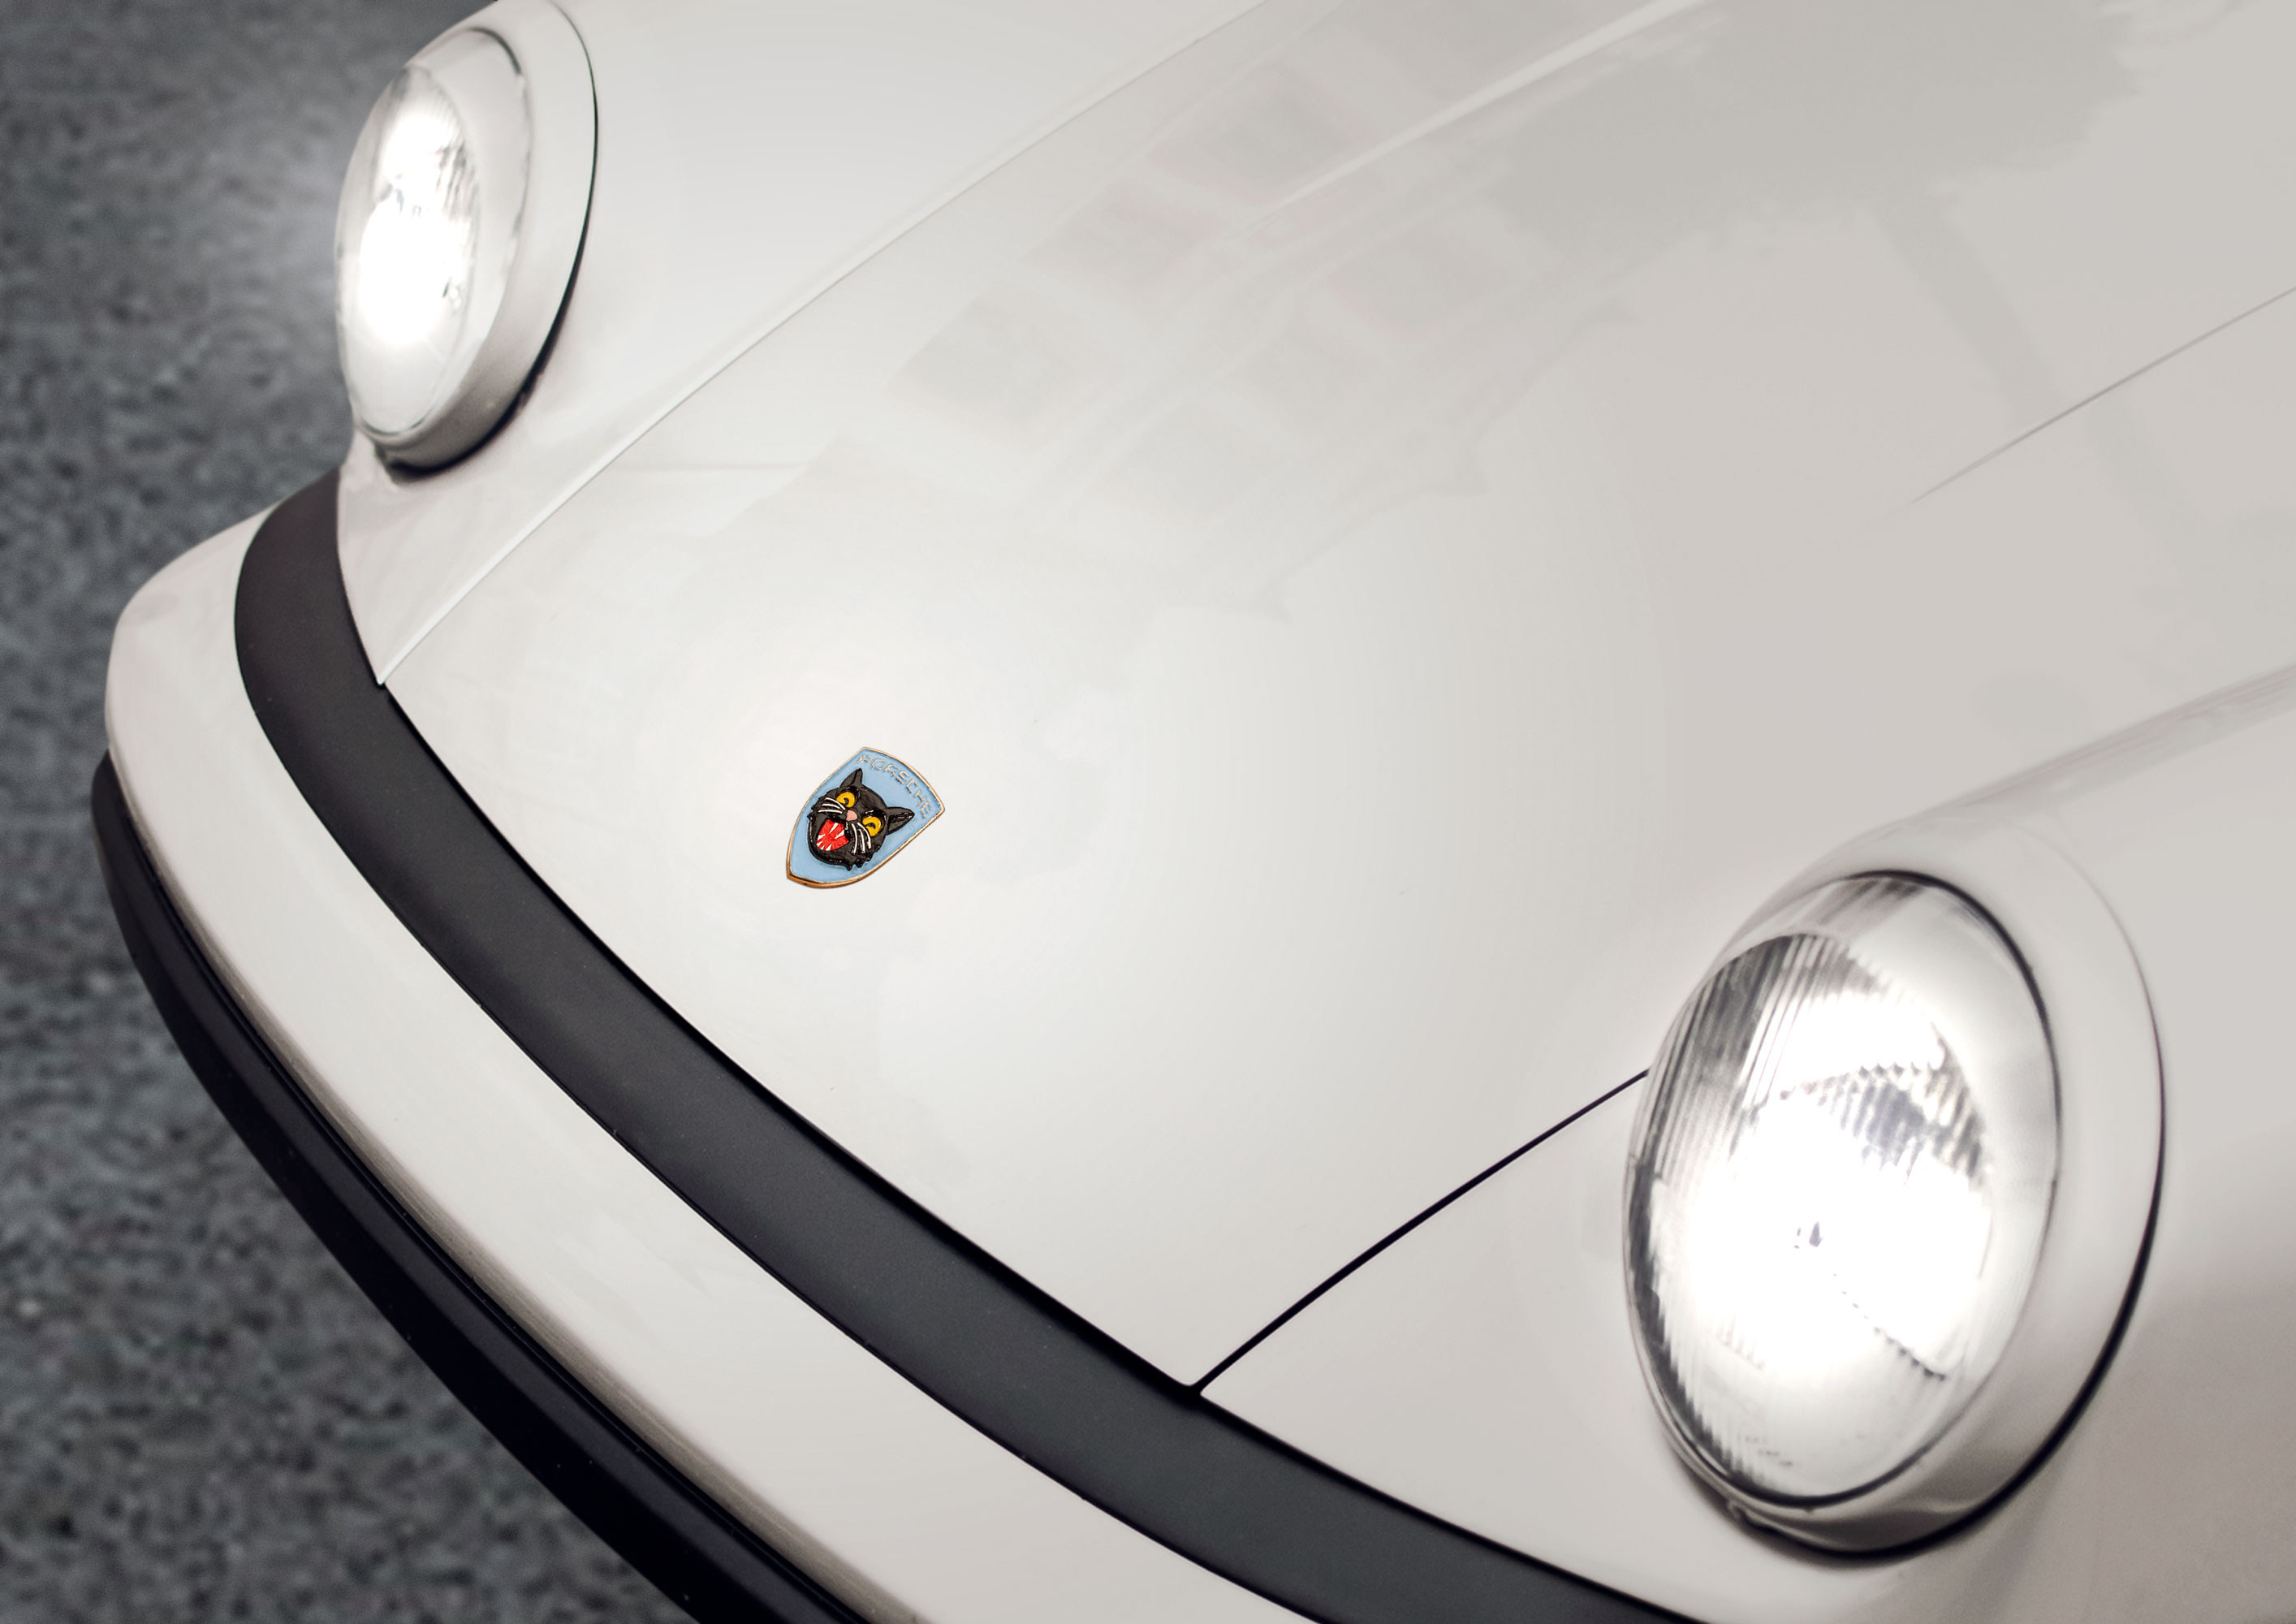 Studio-Job-Porsche-logo-context-2-20191